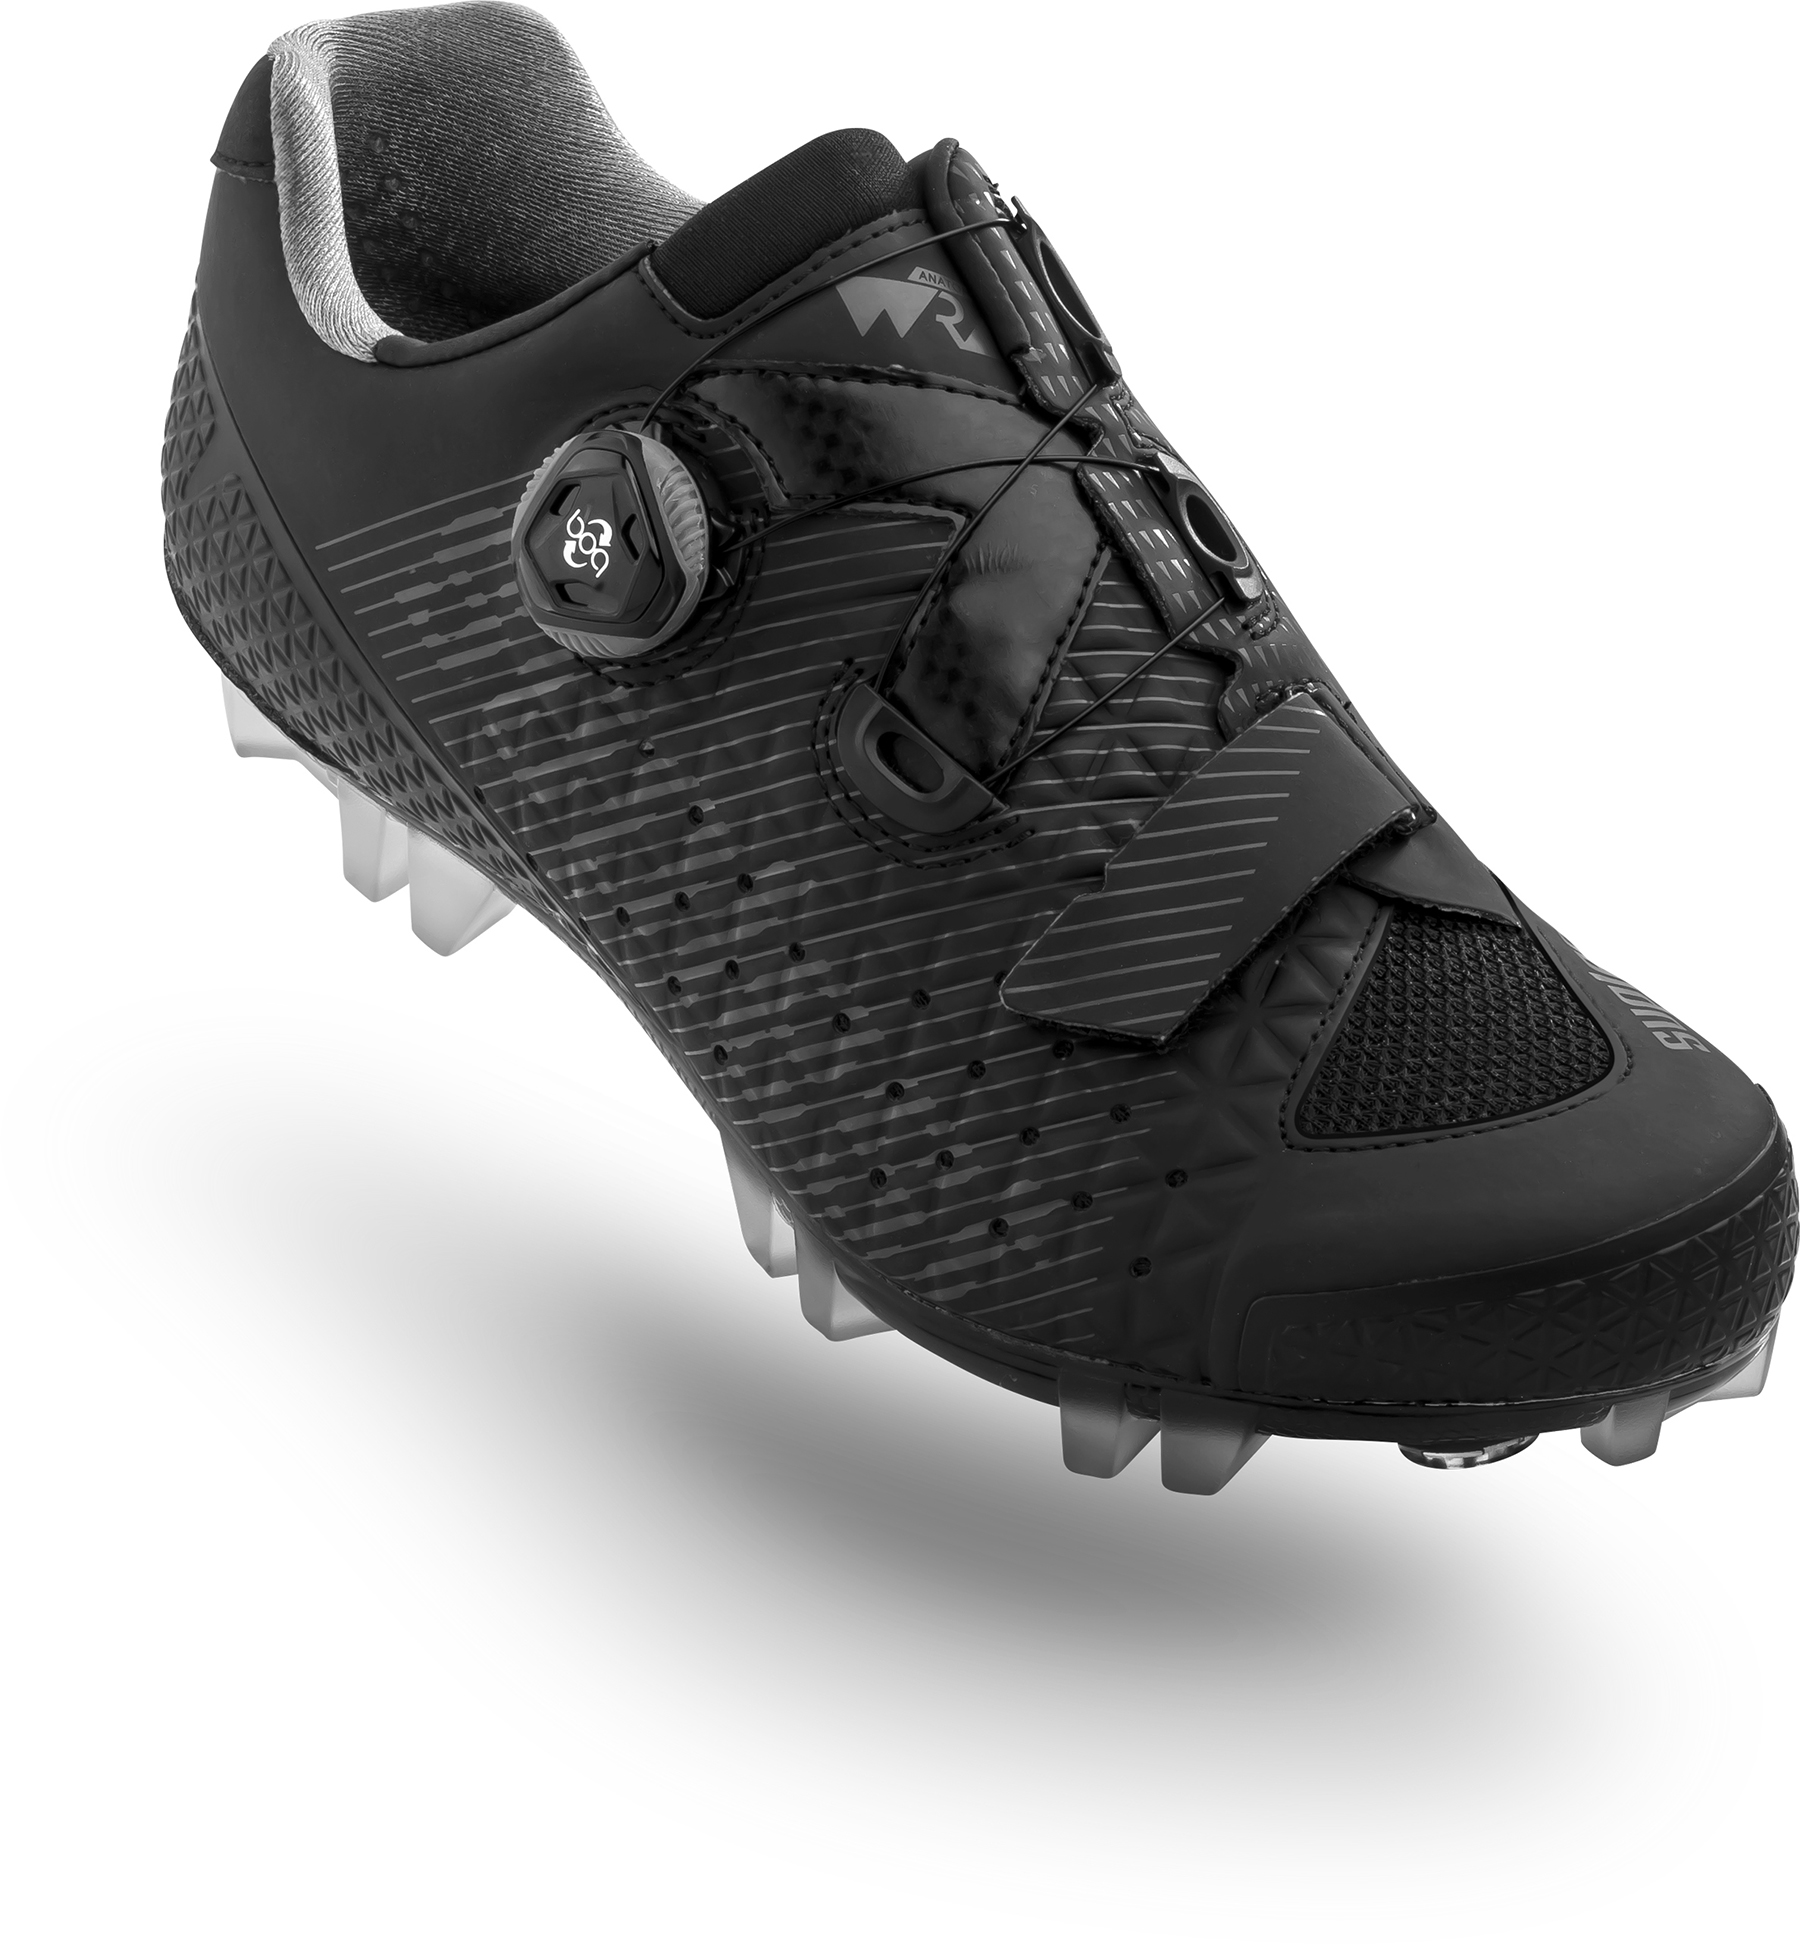 Suplest Edge3 BOA L6 Off Road Shoe | Shoes and overlays